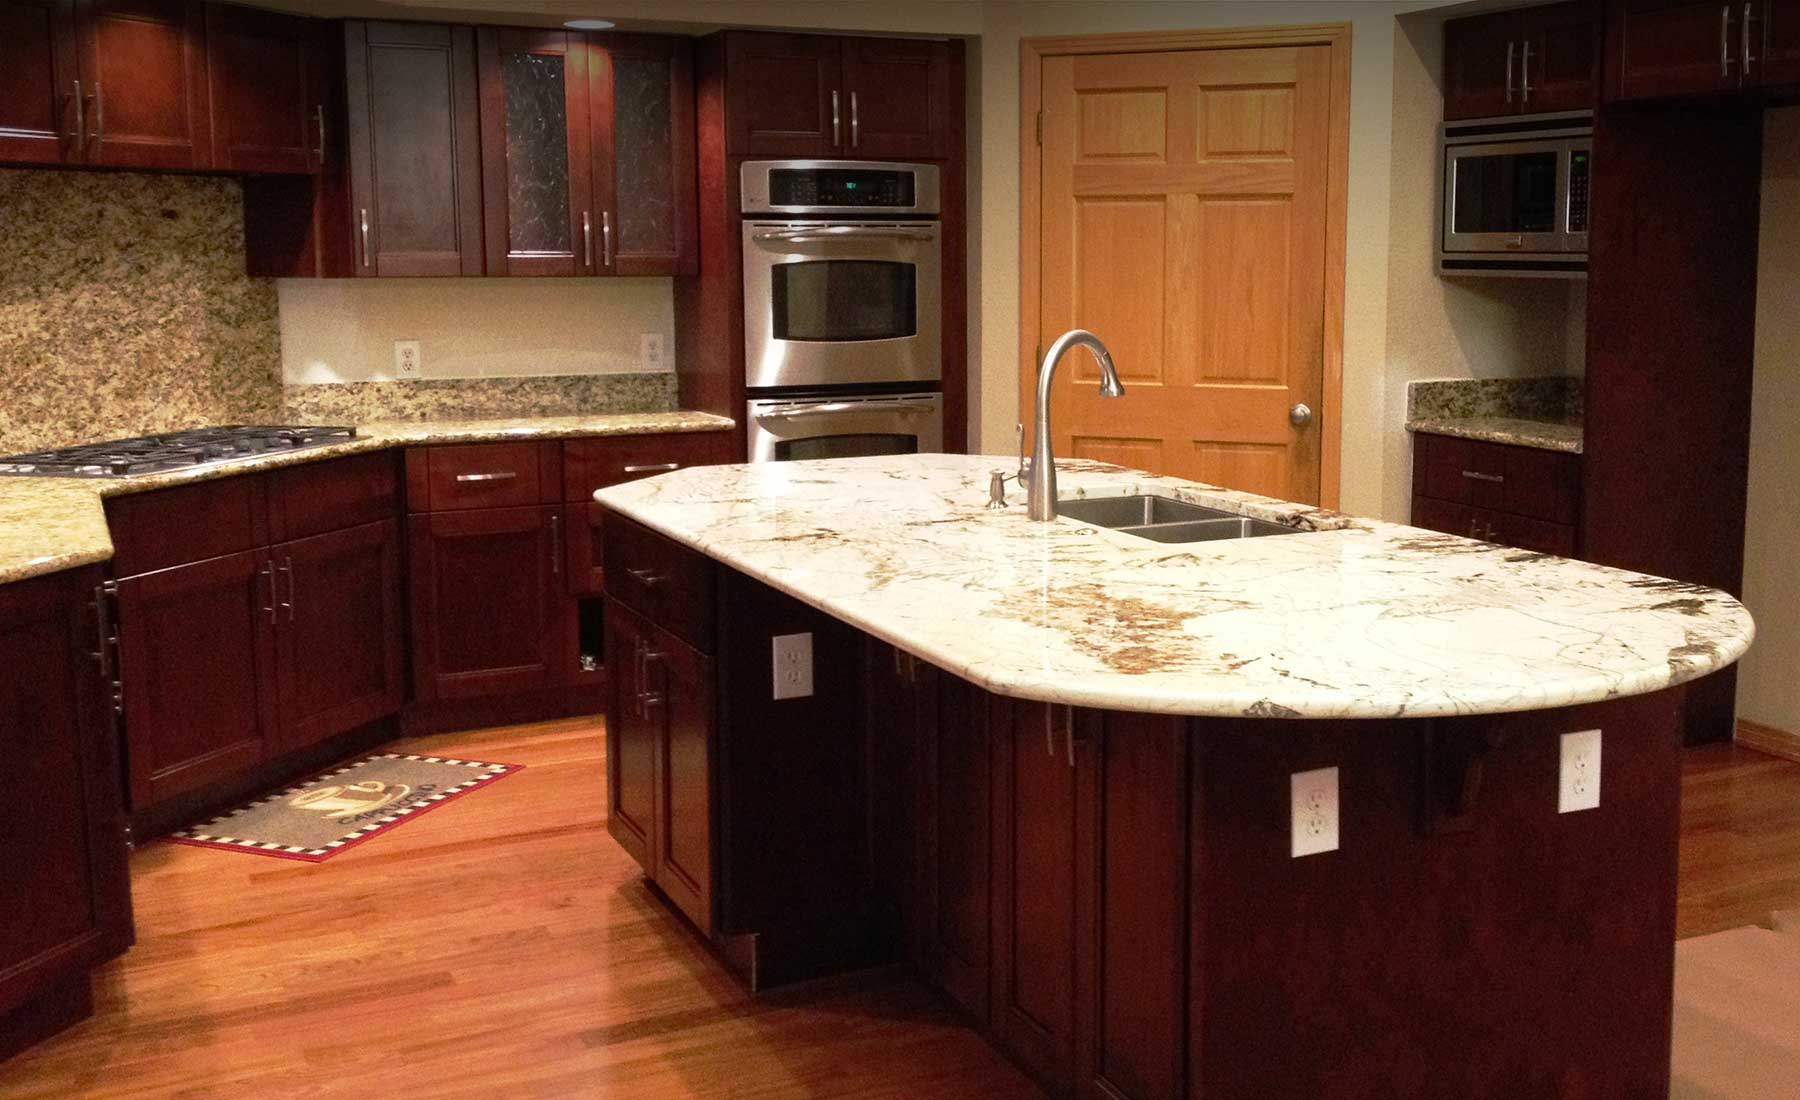 Cherry Shaker Kitchen Cabinets cherry double shaker kitchen cabinets | custom cabinets | stone